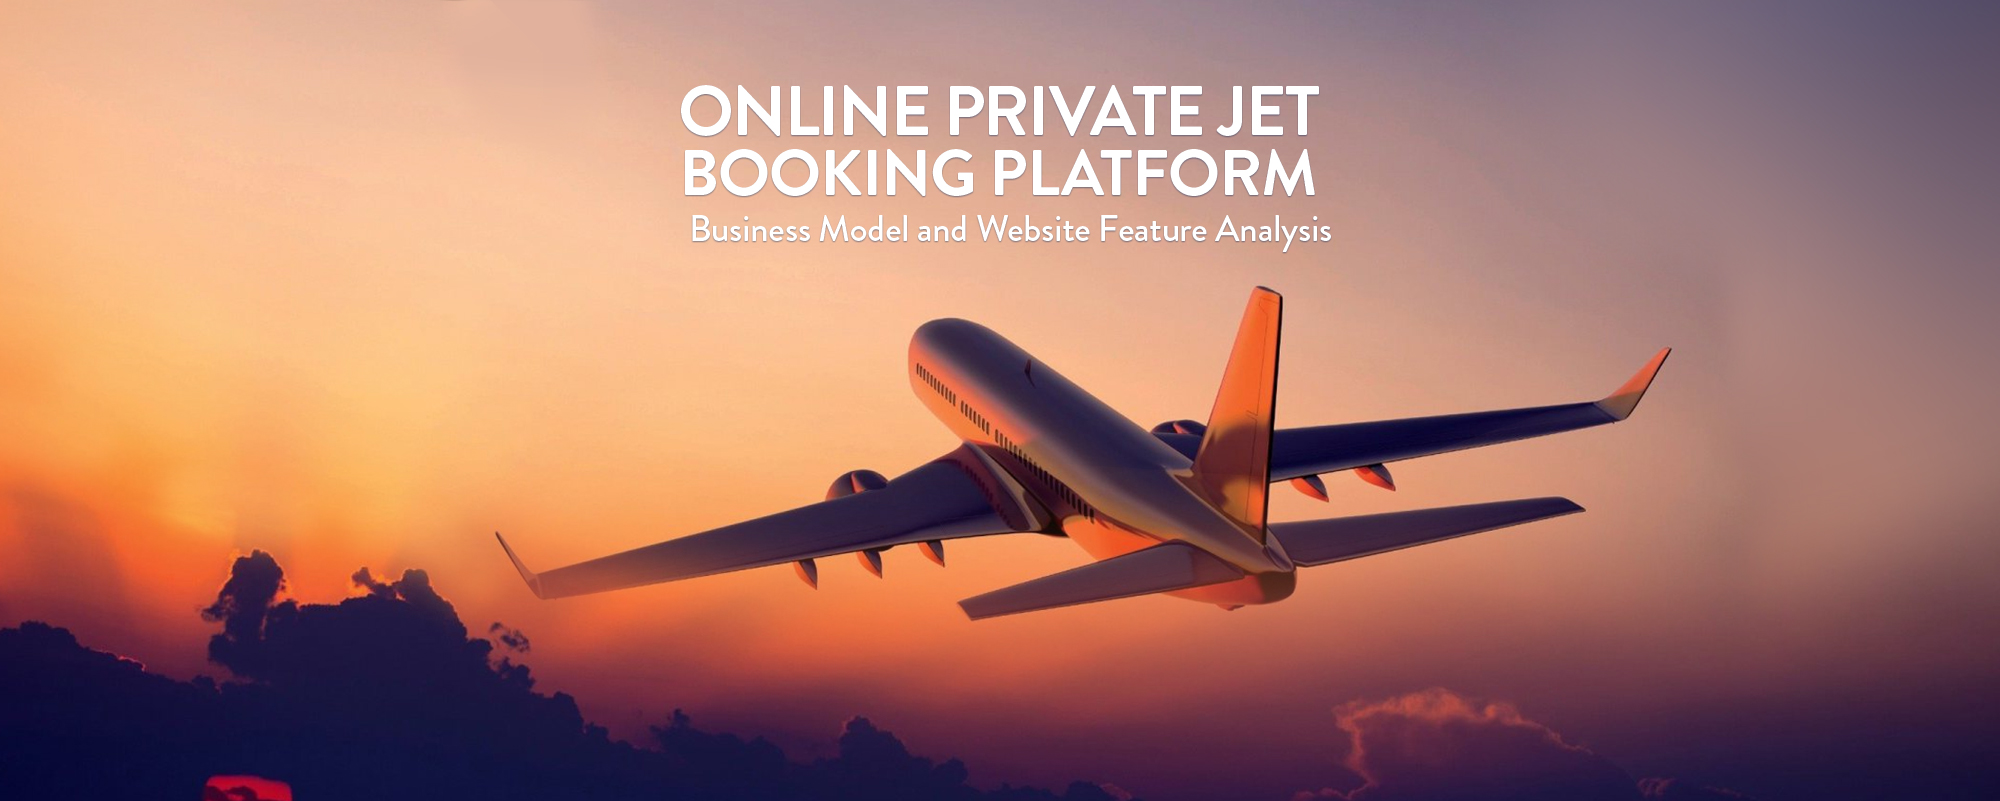 Online Charter Flight Booking Is the Hot New Business Idea – Learn How to Build One